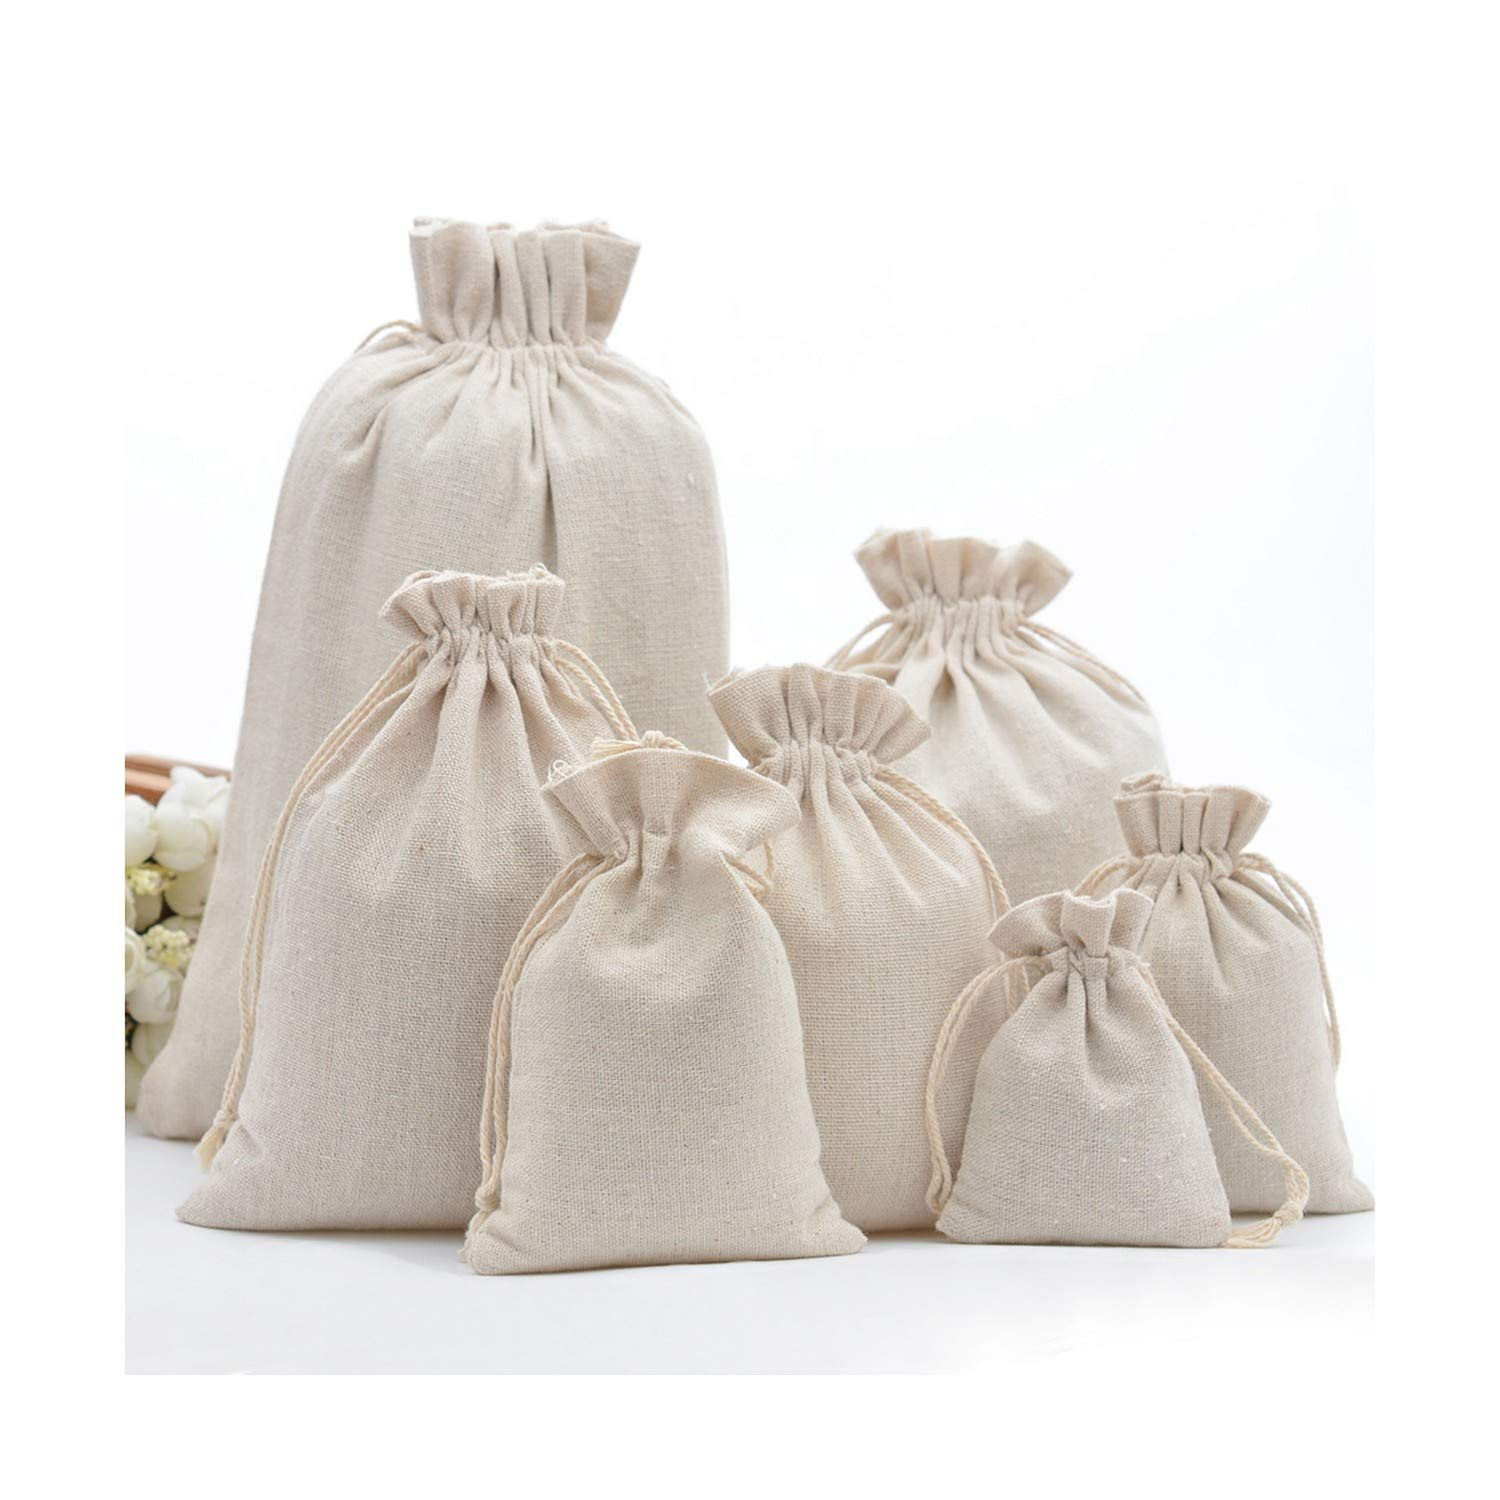 Handmade Cotton Drawstring Packaging Gift Bags for Coffee Bean Jewelry Pouch Storage Wedding Favors Rustic Folk Christmas by Saglleom